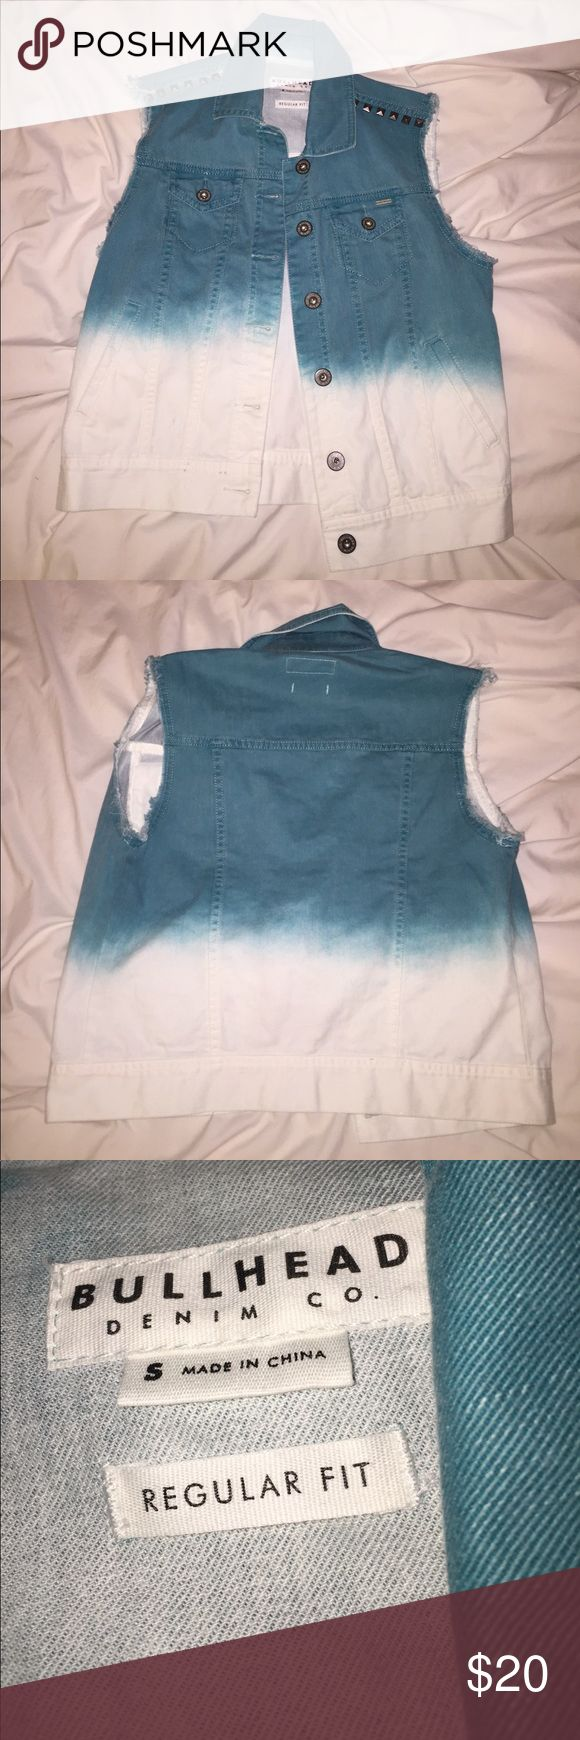 Distressed Teal and White Ombré Studded Denim Vest Ombré denim vest from Bullhead Denim Co. This is new and has never been worn, so it has no rips or stains and is in great condition. If you have any questions, feel free to ask! Bullhead Jackets & Coats Vests